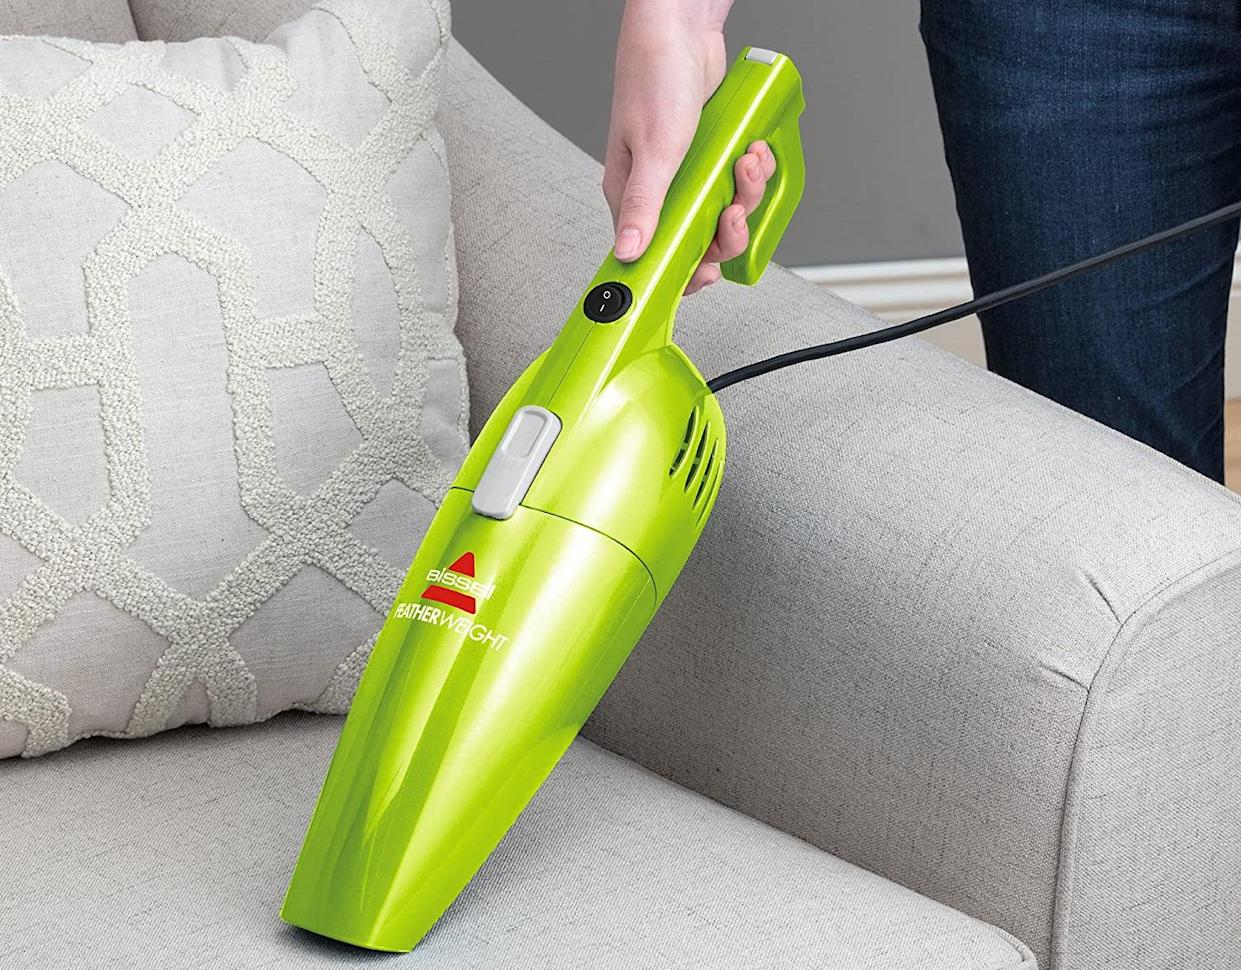 Need to get up close and personal with some household nasties? This baby transforms into a handheld! (Photo: Amazon)